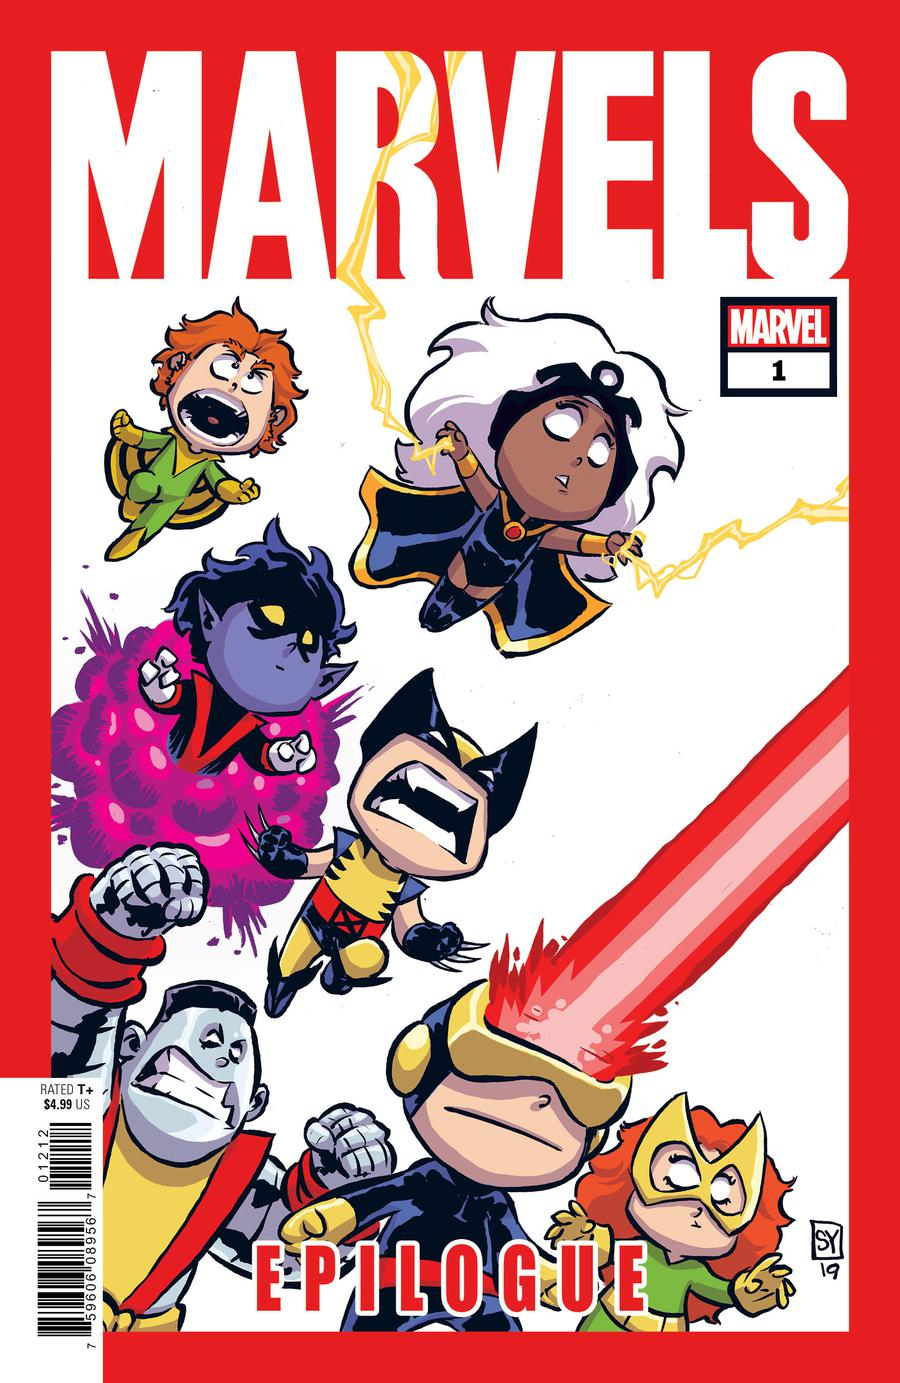 Marvels Epilogue #1 Cover C Variant Skottie Young Cover